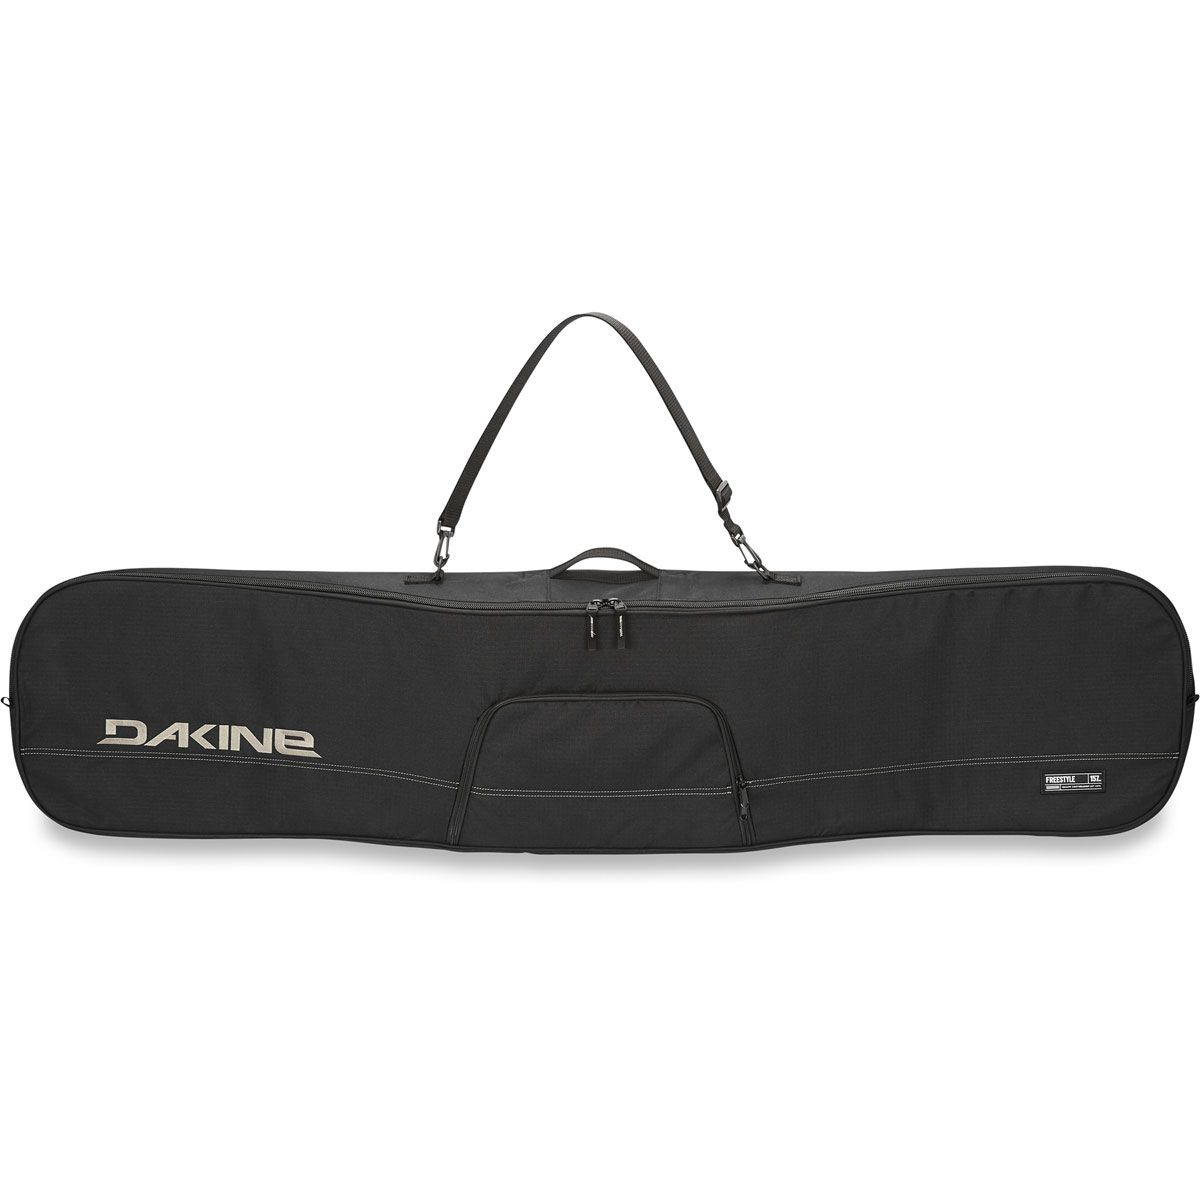 Dakine Freestyle Snowboard Bag 2019-20